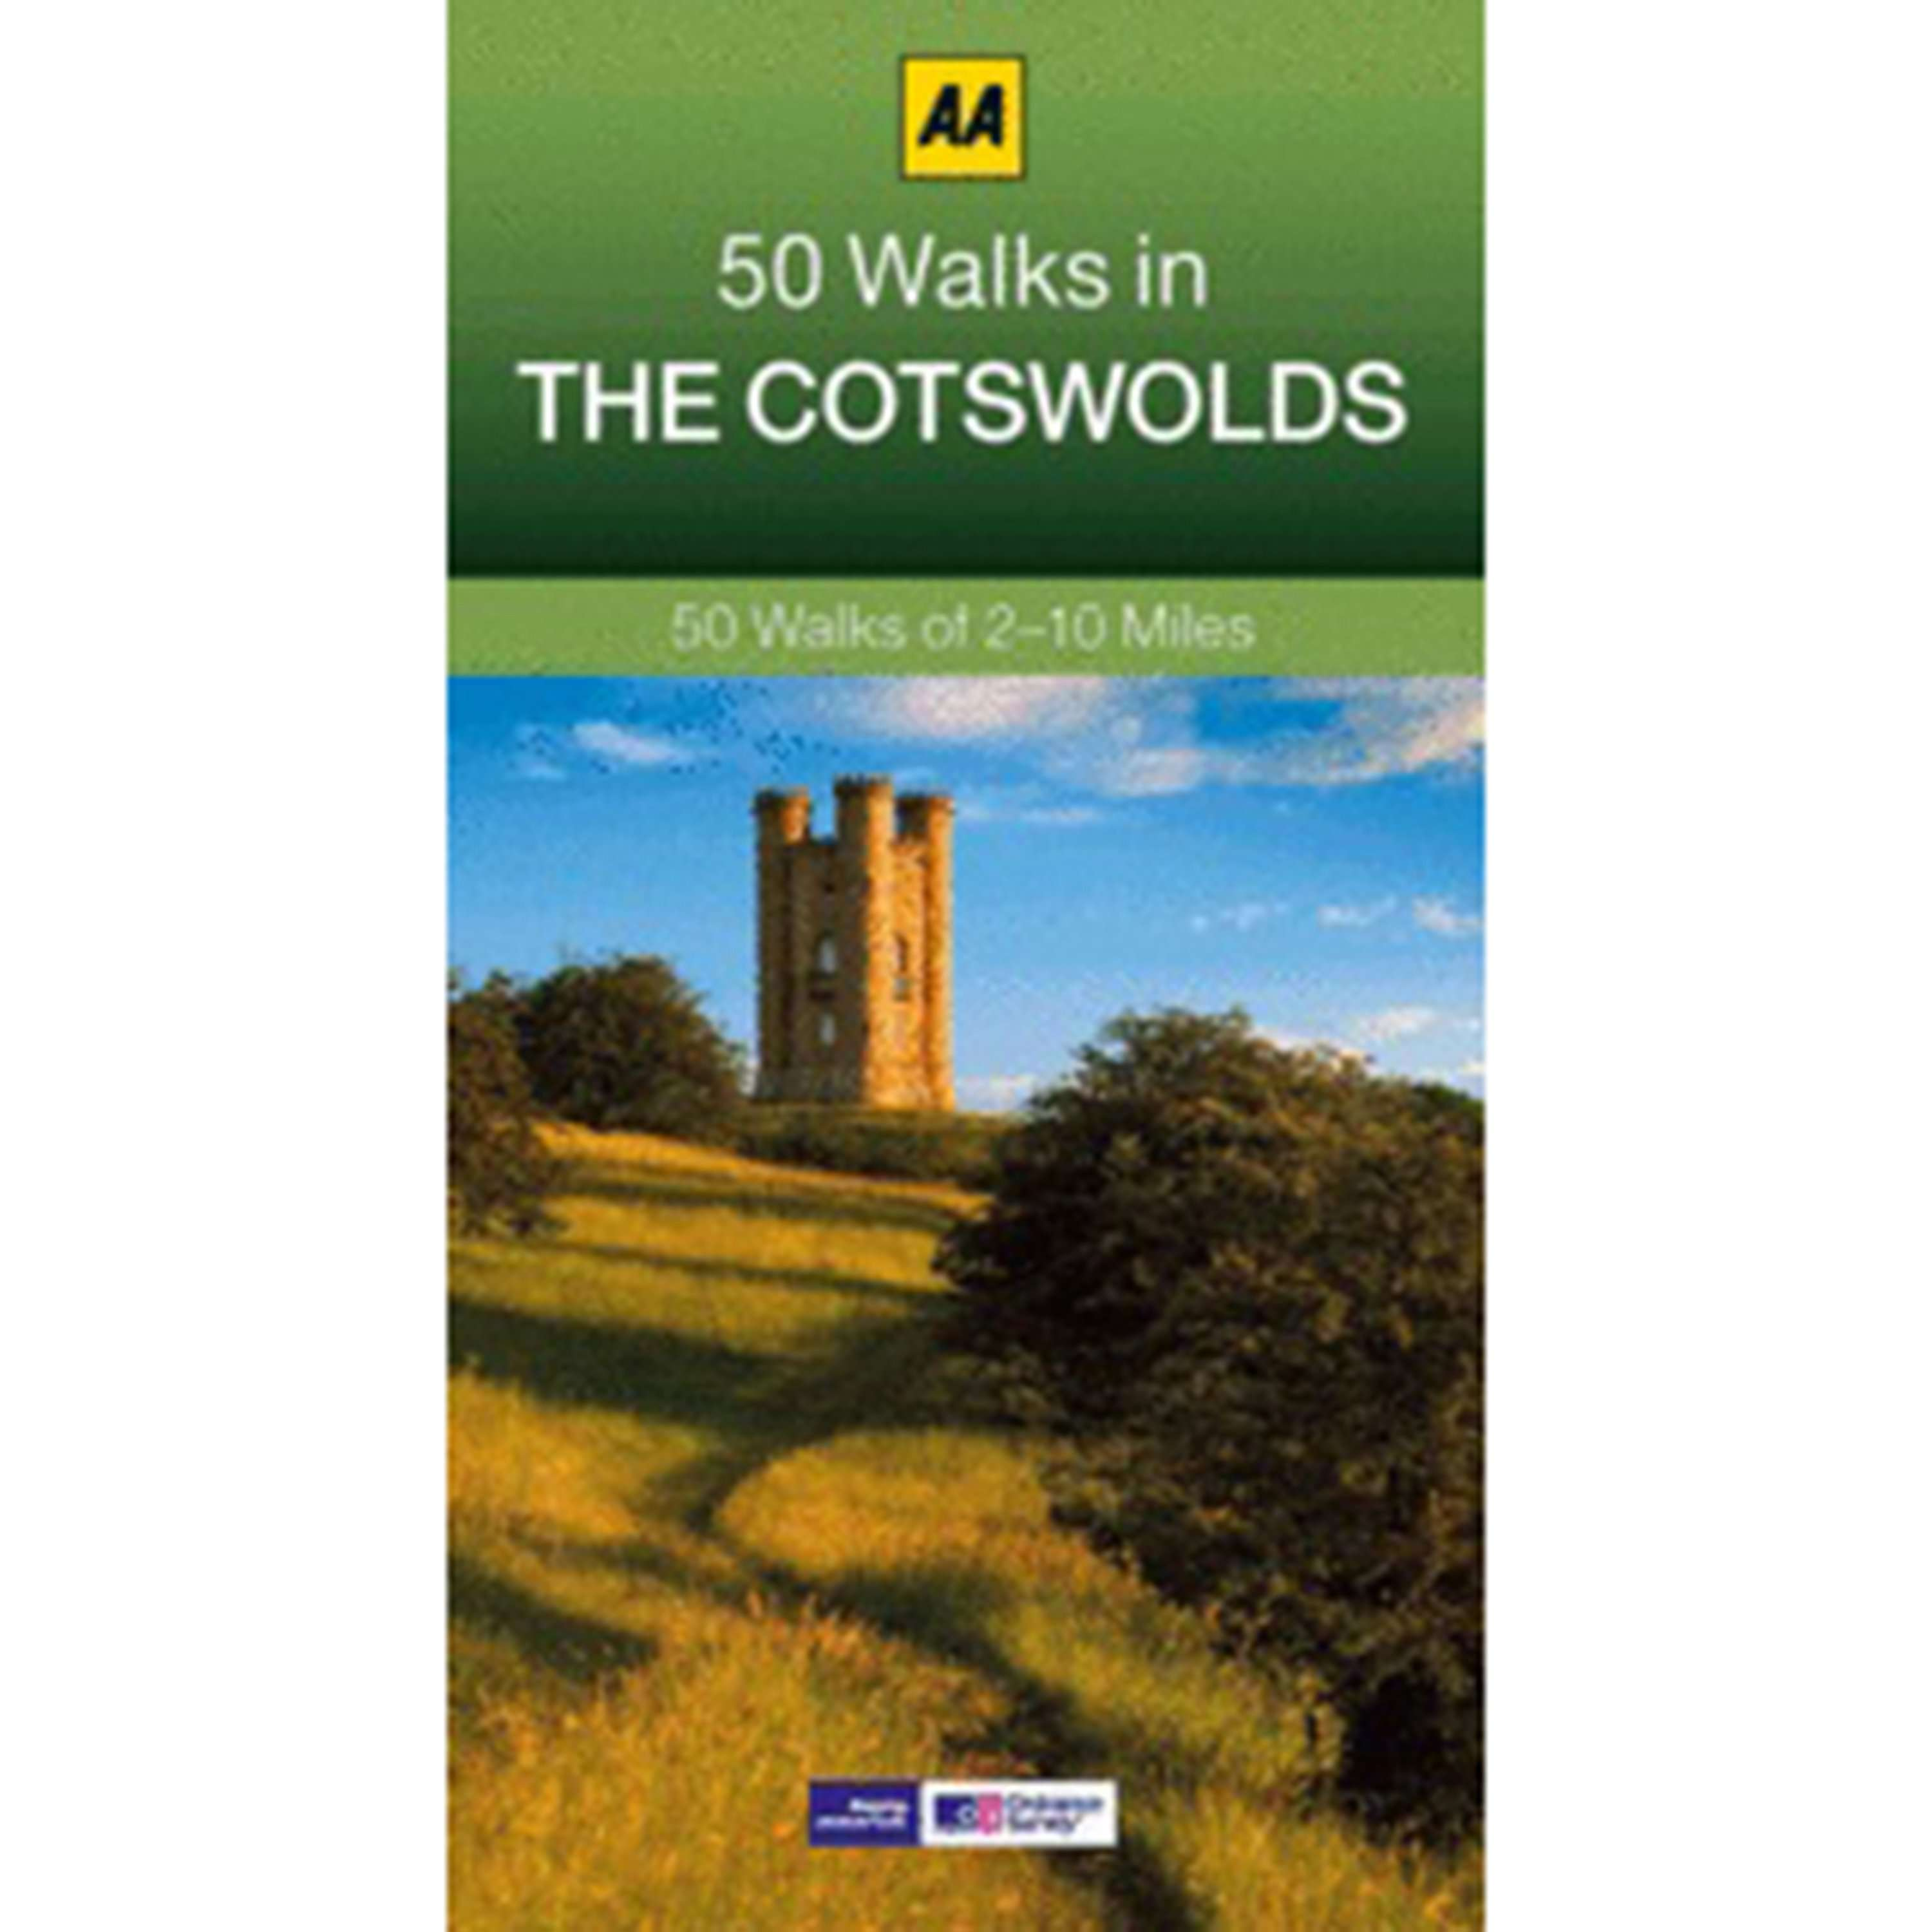 AA 50 Walks In Cotswolds